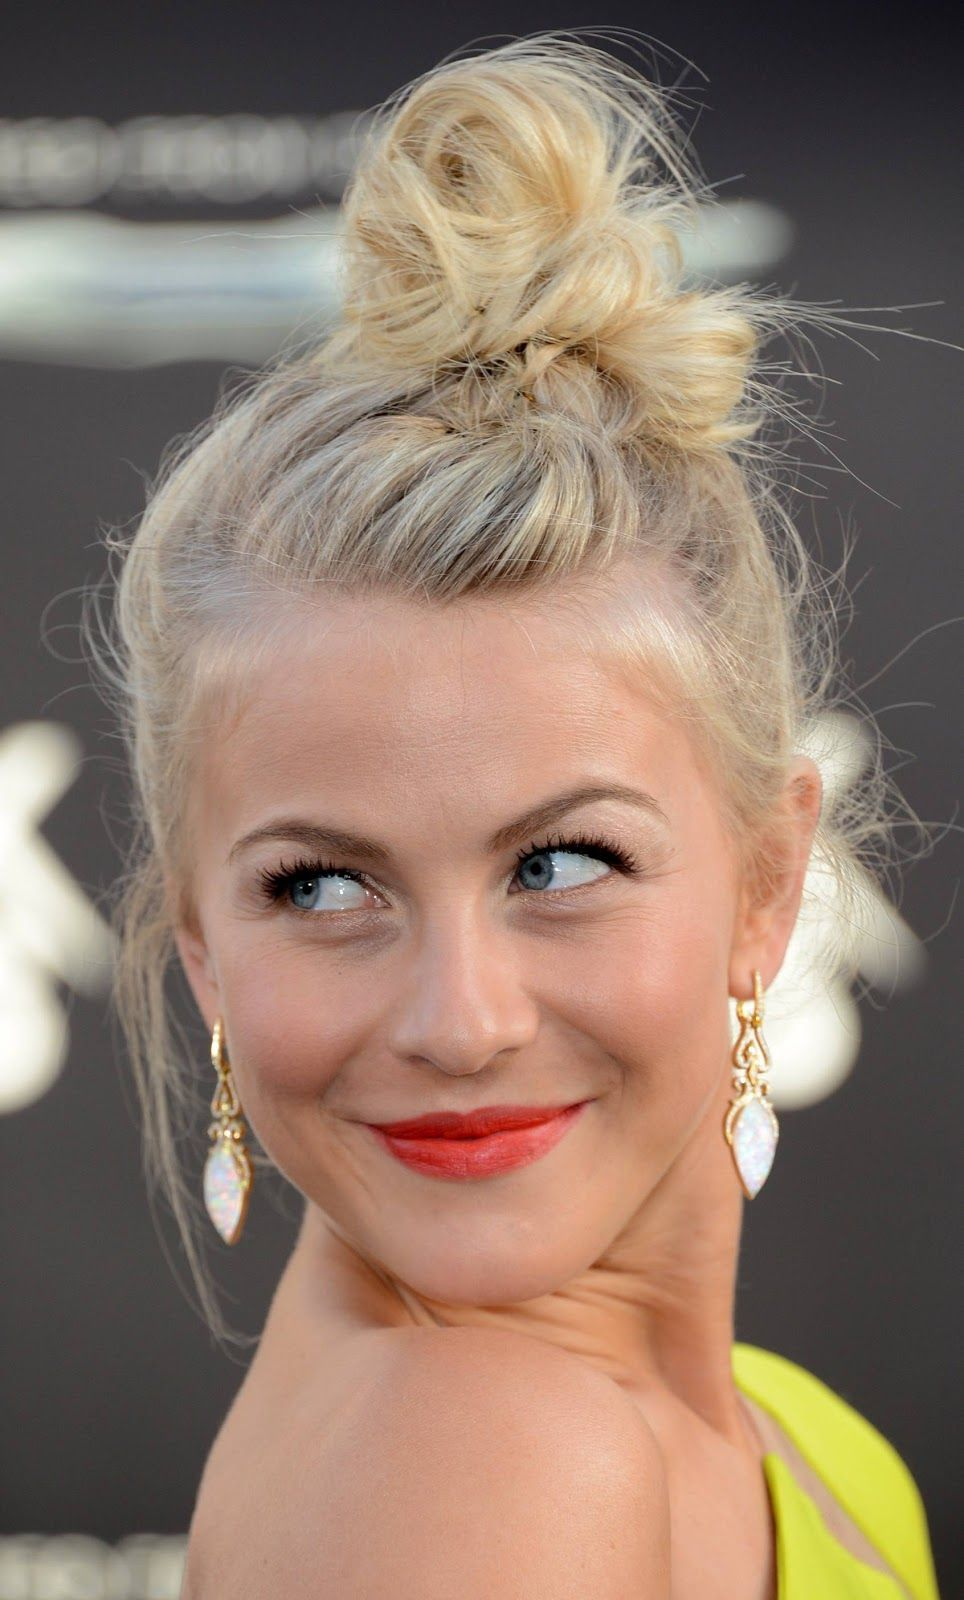 20 Buns For Bad Hair Days Umm Yeah I Think Every Girl